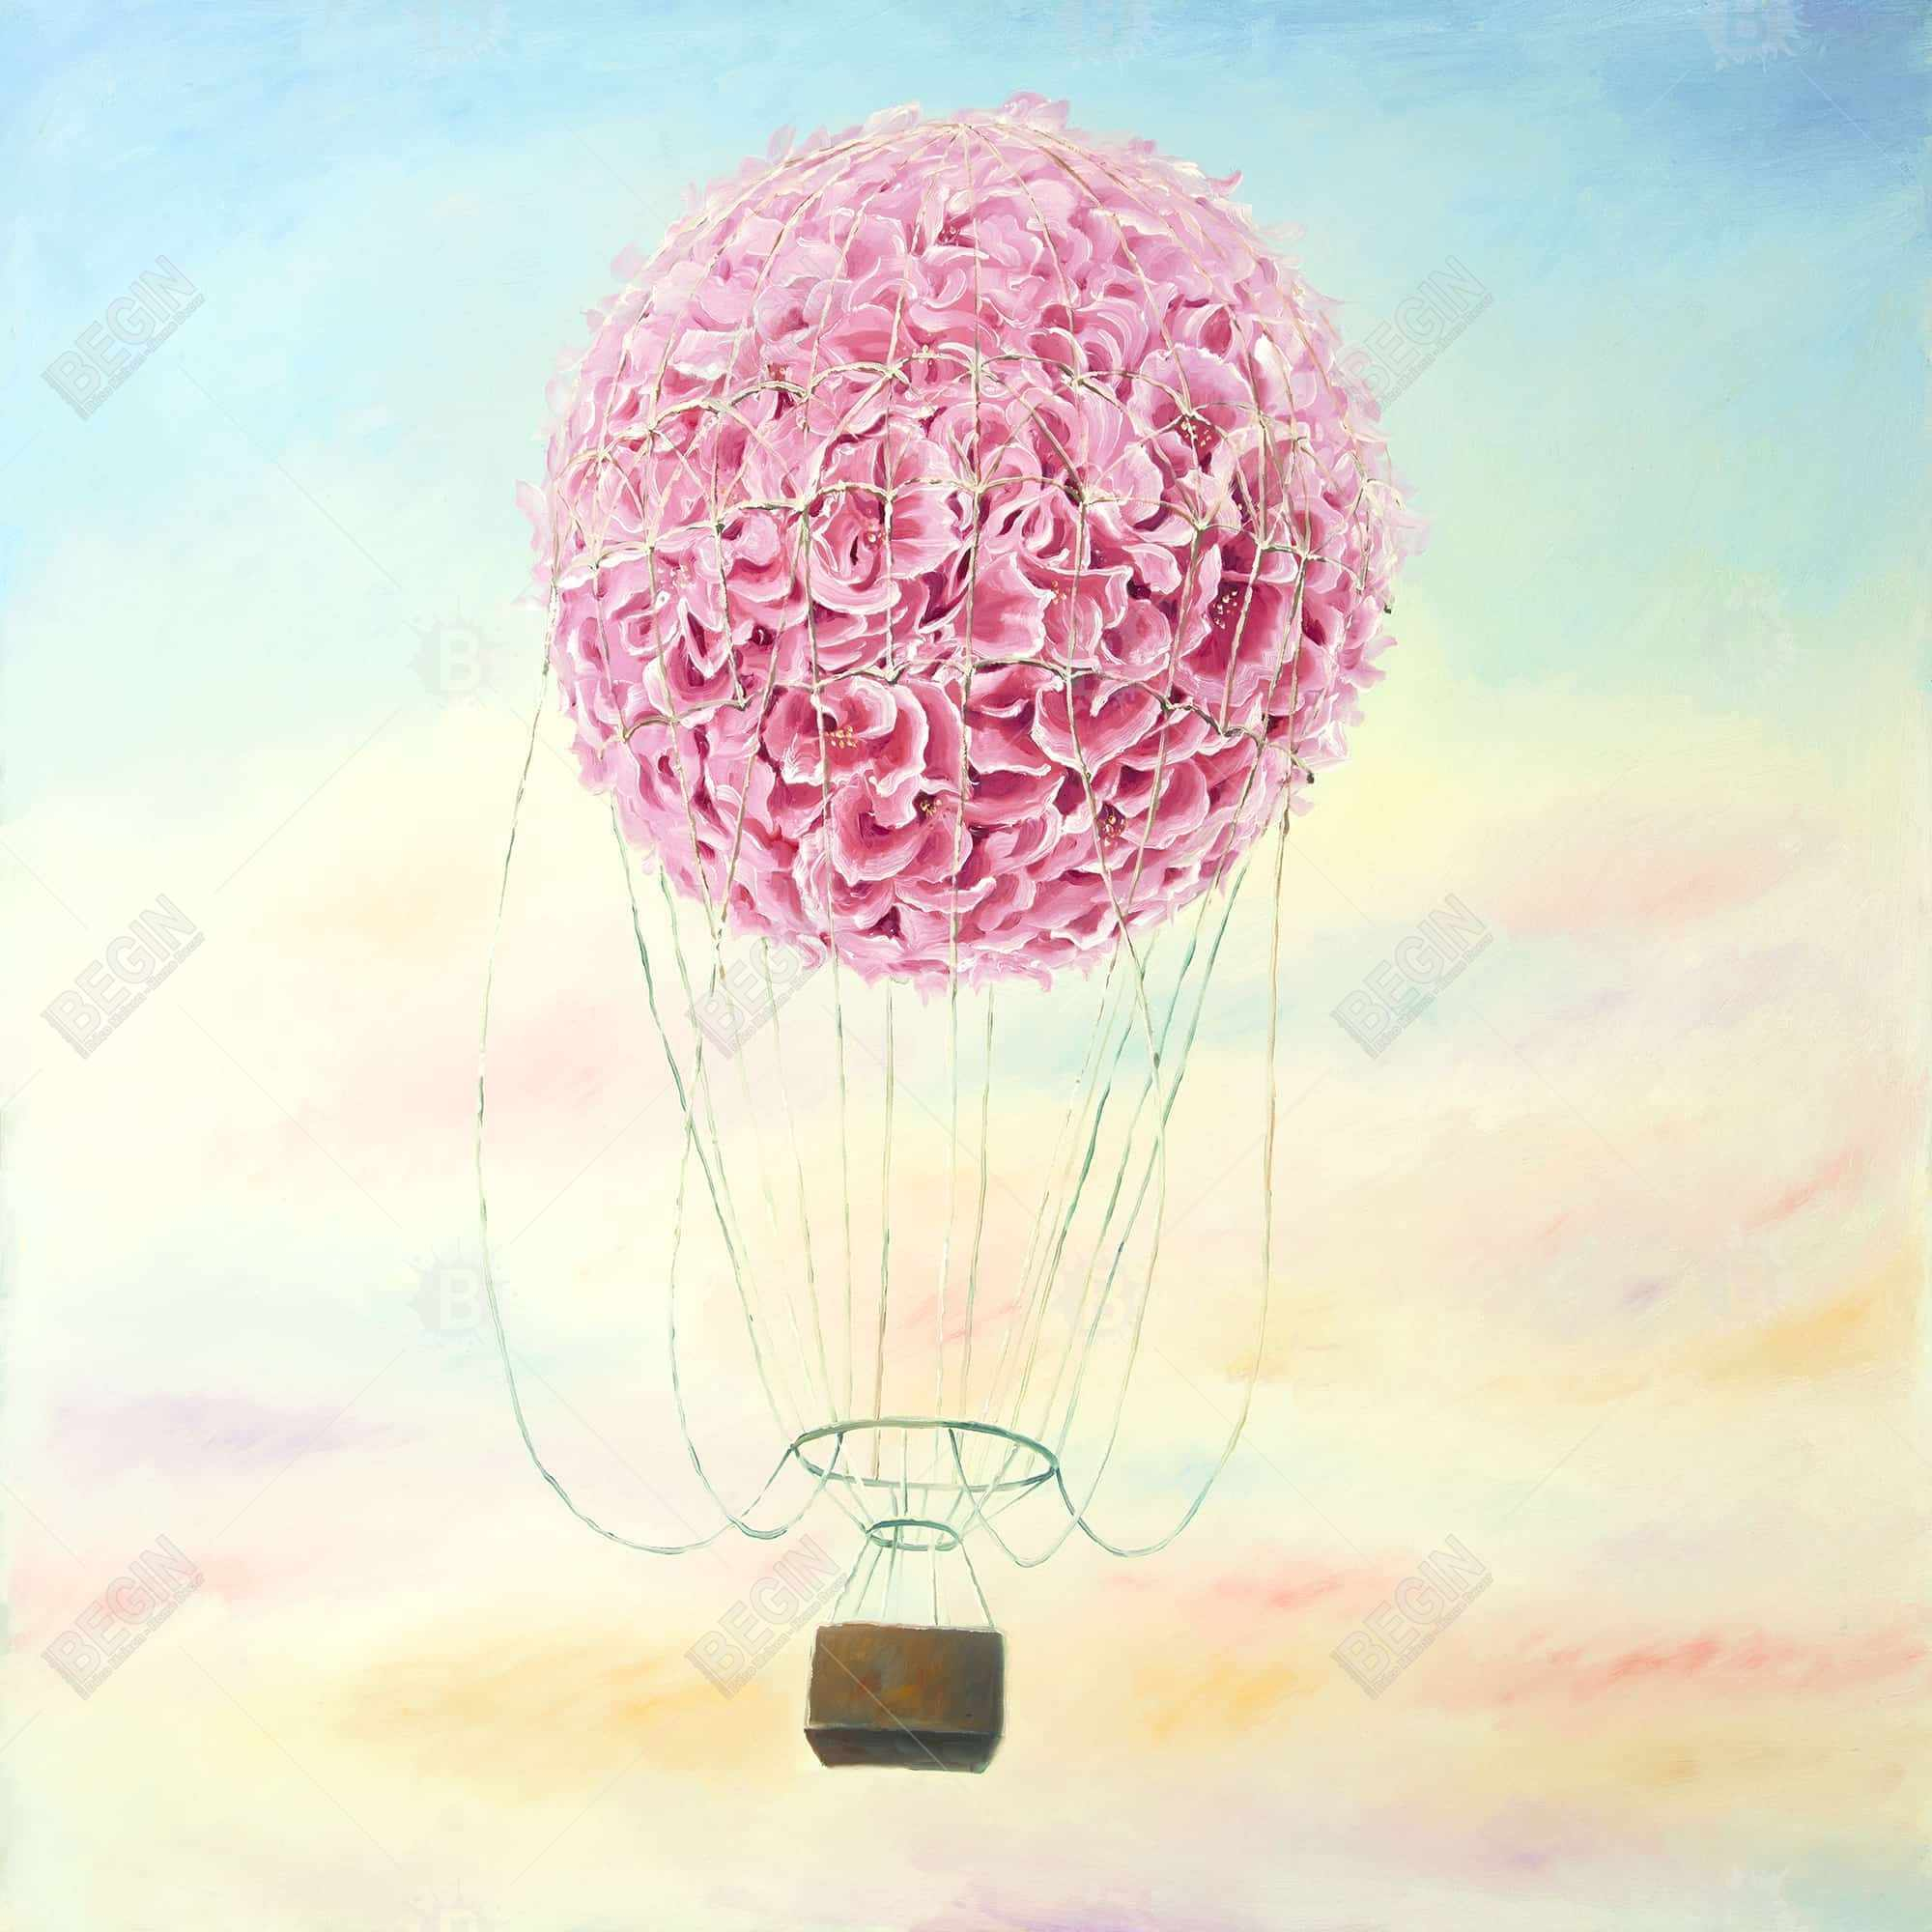 Hot air balloon hydrangea flowers